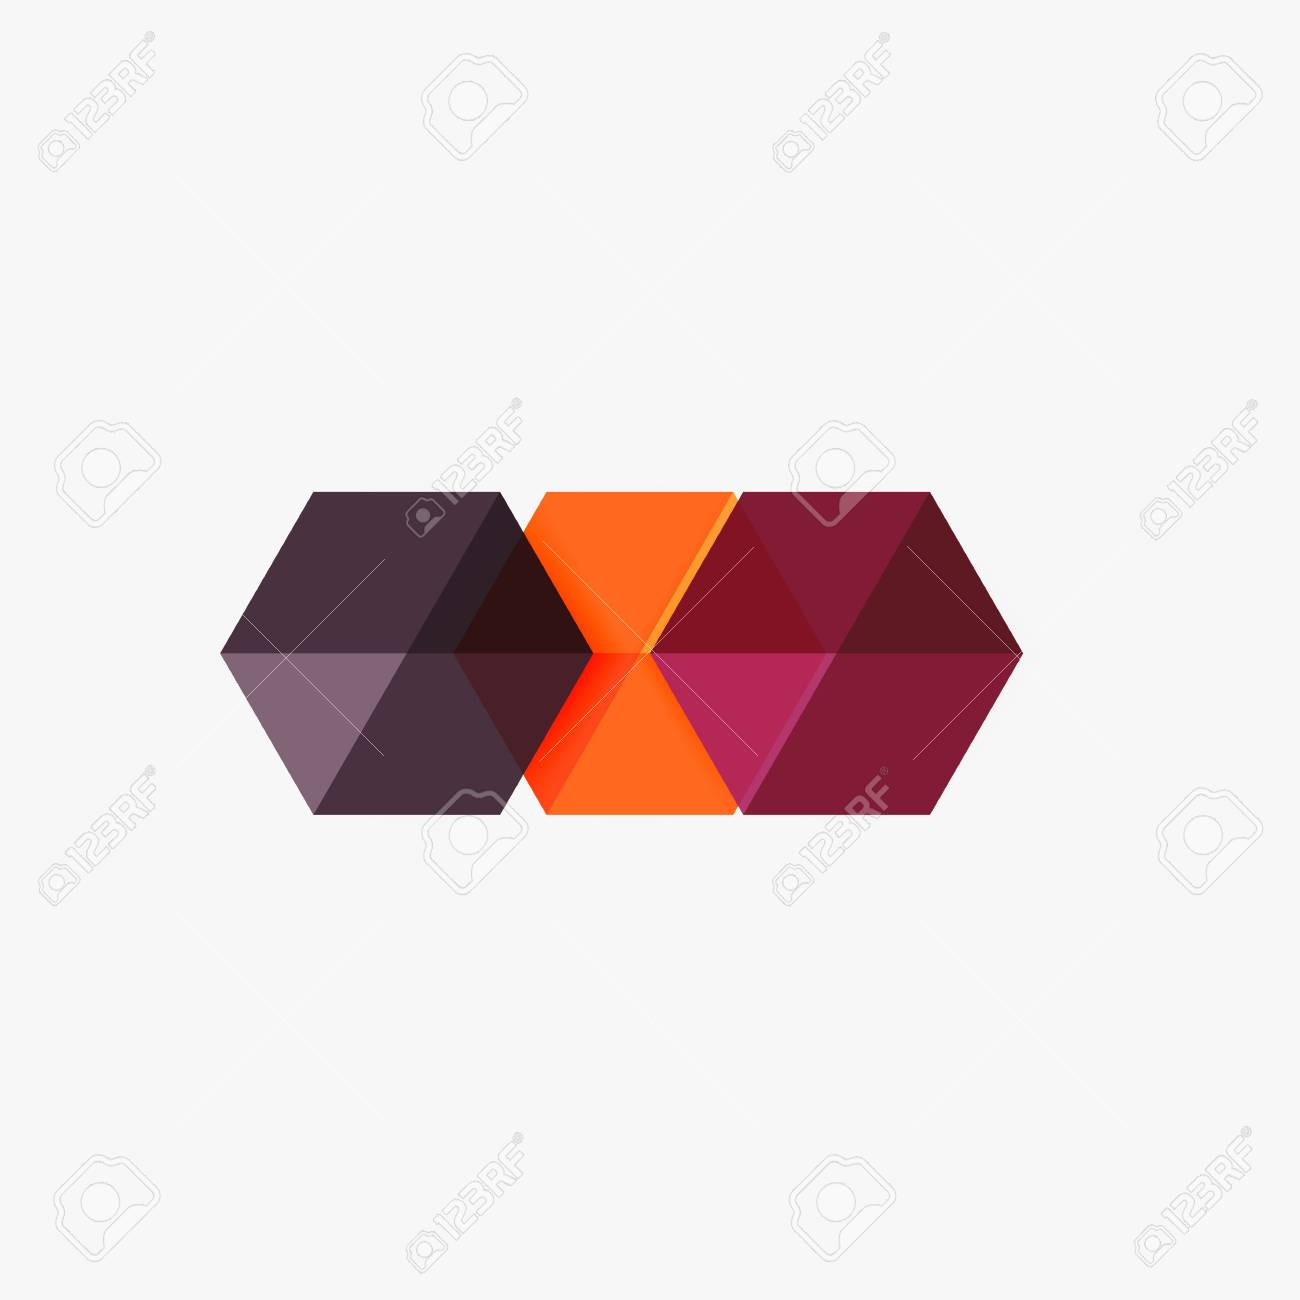 Blank Geometric Abstract Business Templates, Hexagon Layouts ...